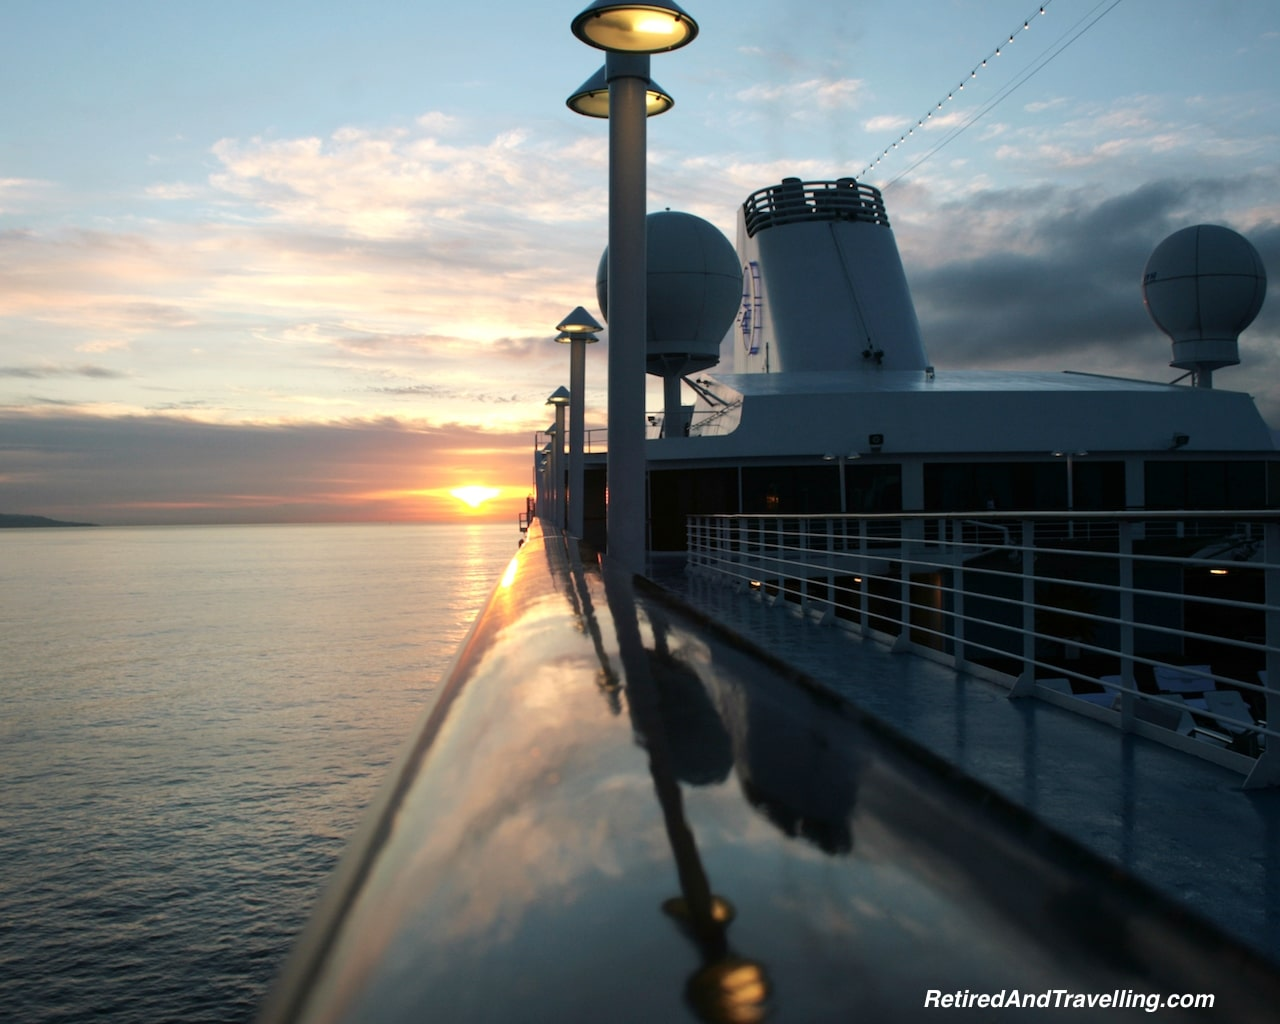 Sunsets at sea - Ready For An Around The World Cruise.jpg